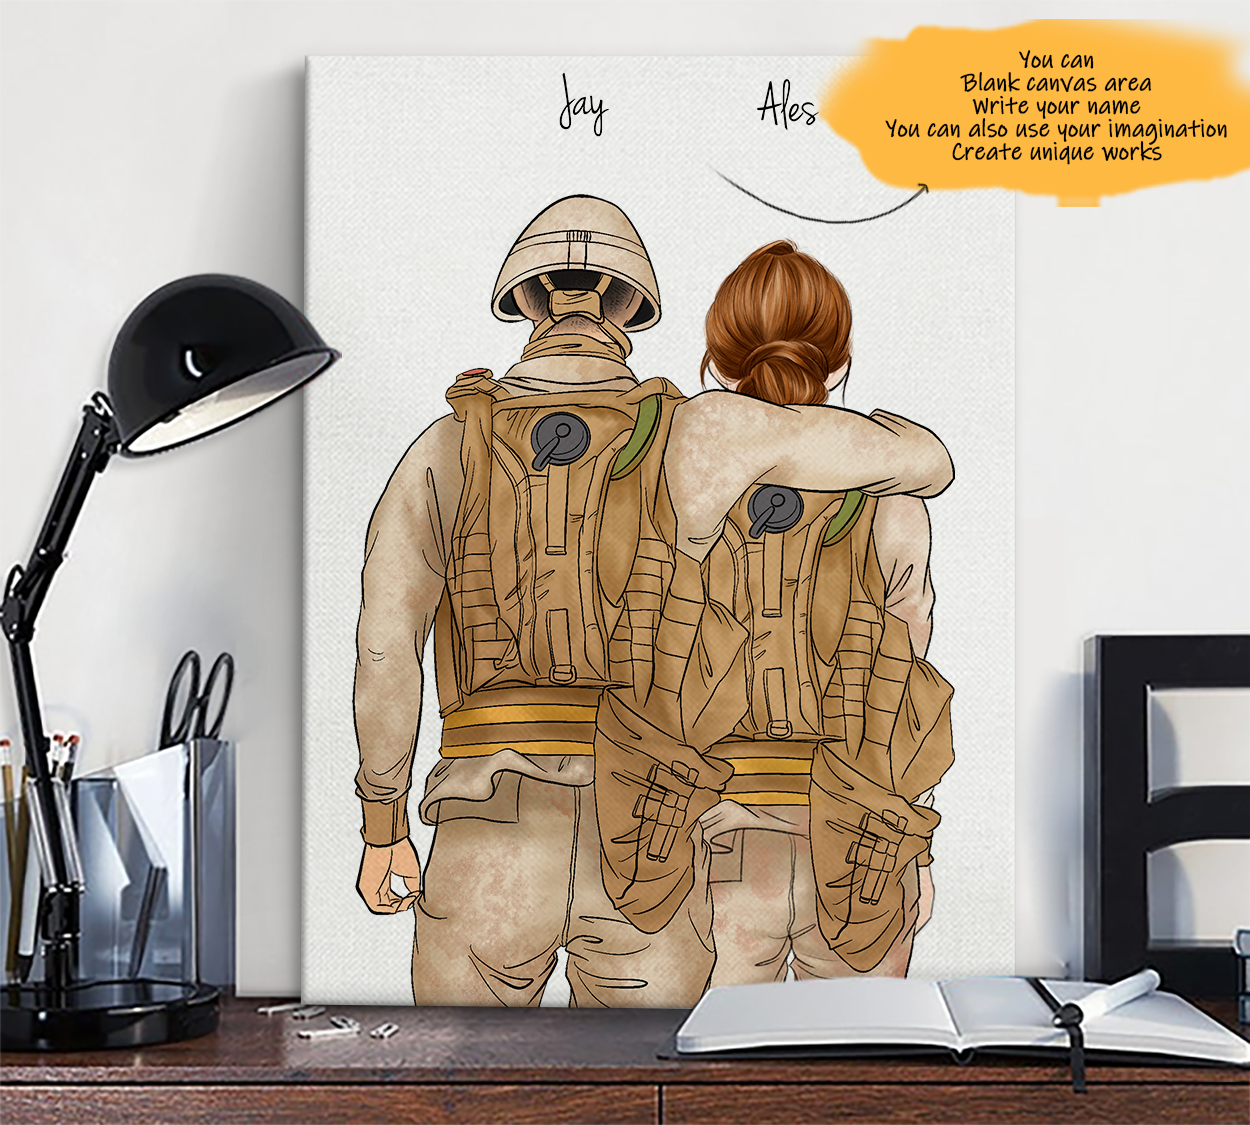 He is My Friend! Hand Draw Custom Canvas-Print Gift Soldier-Light&Soldier1